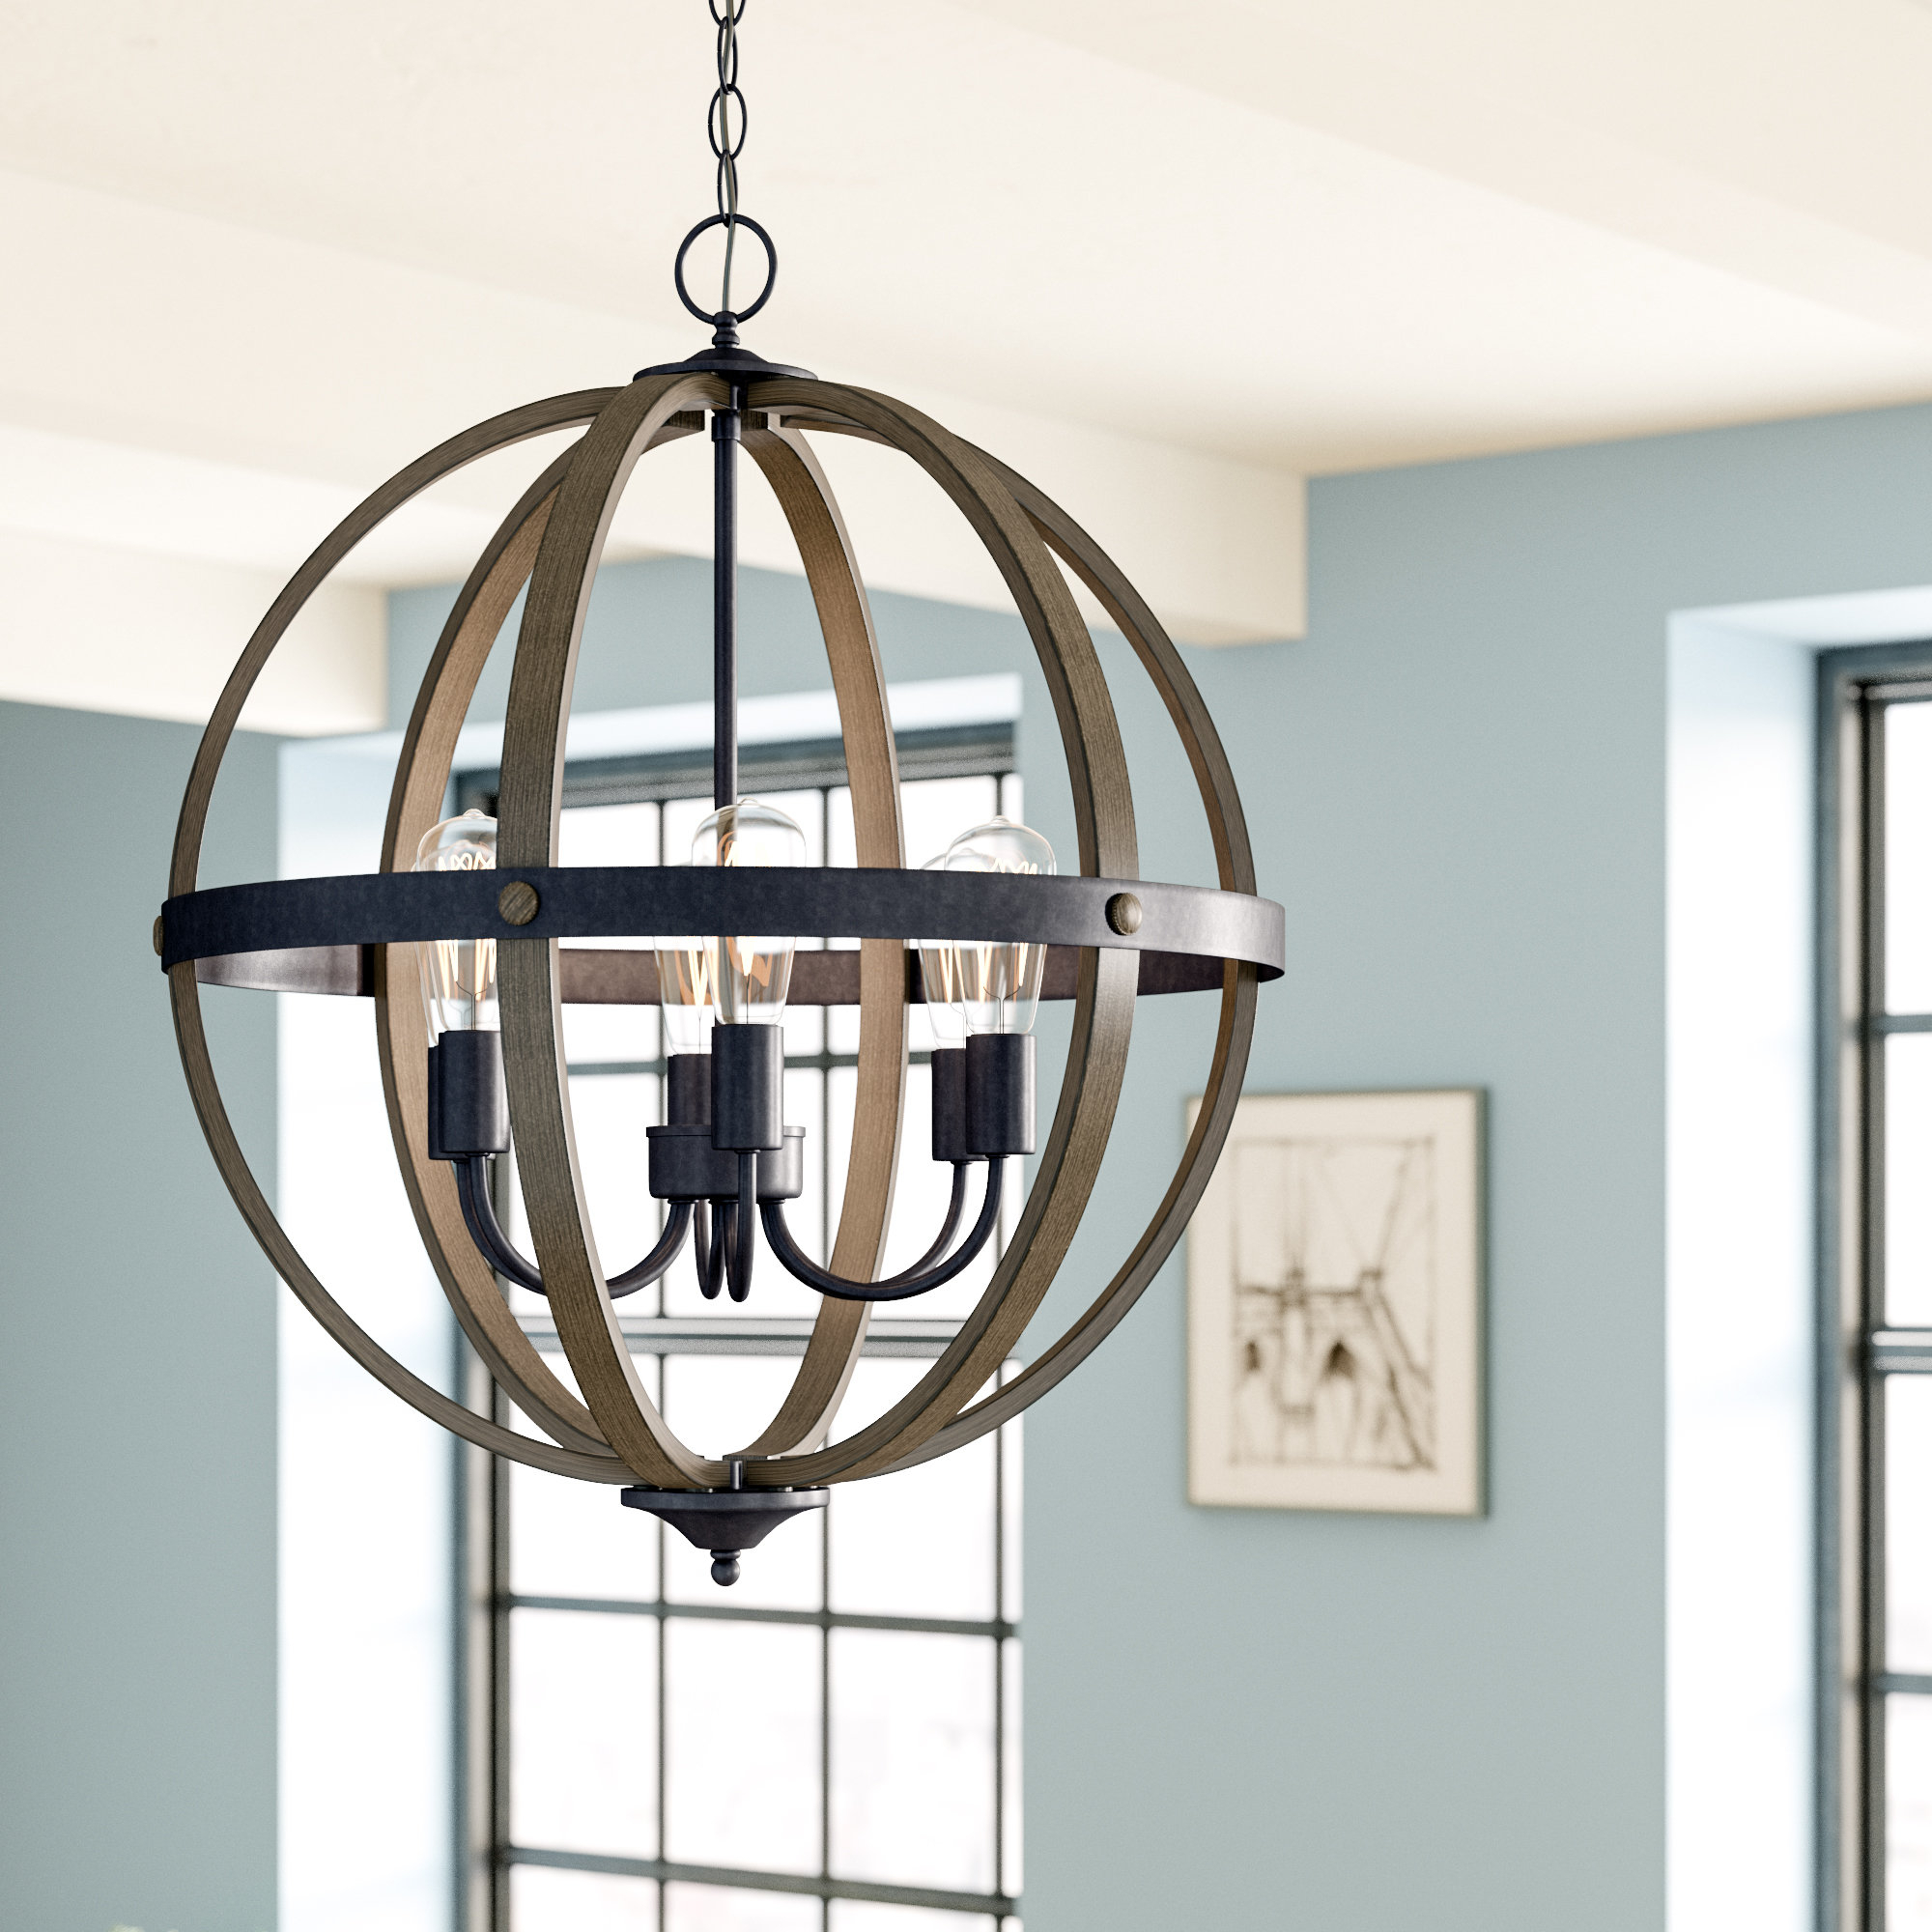 [%Globe Chandeliers Sale – Up To 65% Off Until September 30Th Pertaining To Fashionable Shipststour 3 Light Globe Chandeliers Shipststour 3 Light Globe Chandeliers With Most Popular Globe Chandeliers Sale – Up To 65% Off Until September 30Th Recent Shipststour 3 Light Globe Chandeliers Throughout Globe Chandeliers Sale – Up To 65% Off Until September 30Th Popular Globe Chandeliers Sale – Up To 65% Off Until September 30Th Within Shipststour 3 Light Globe Chandeliers%] (View 1 of 25)